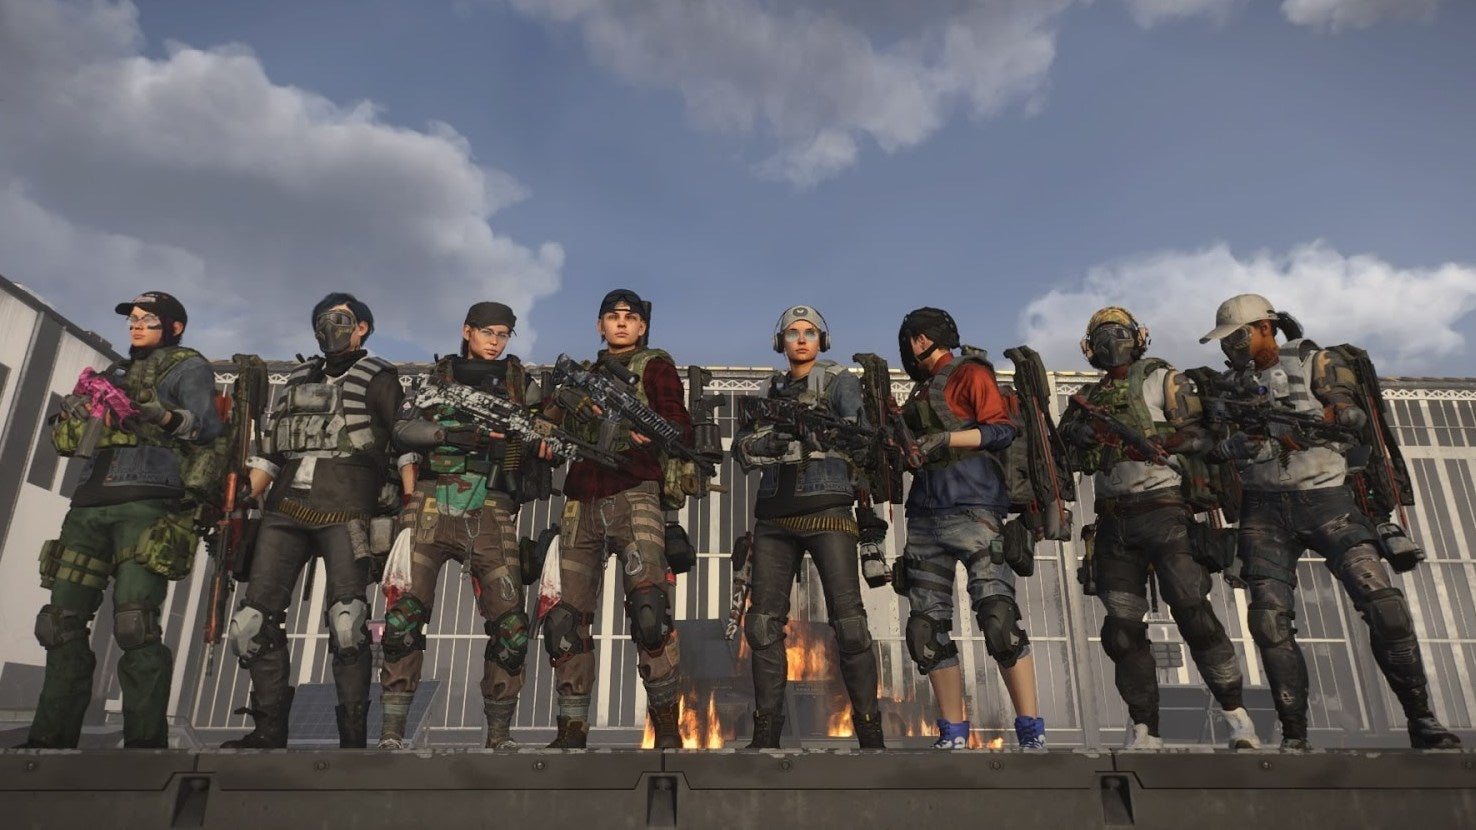 Despite The Haters, The Division 2's All-Women Gaming Group Is Going Strong